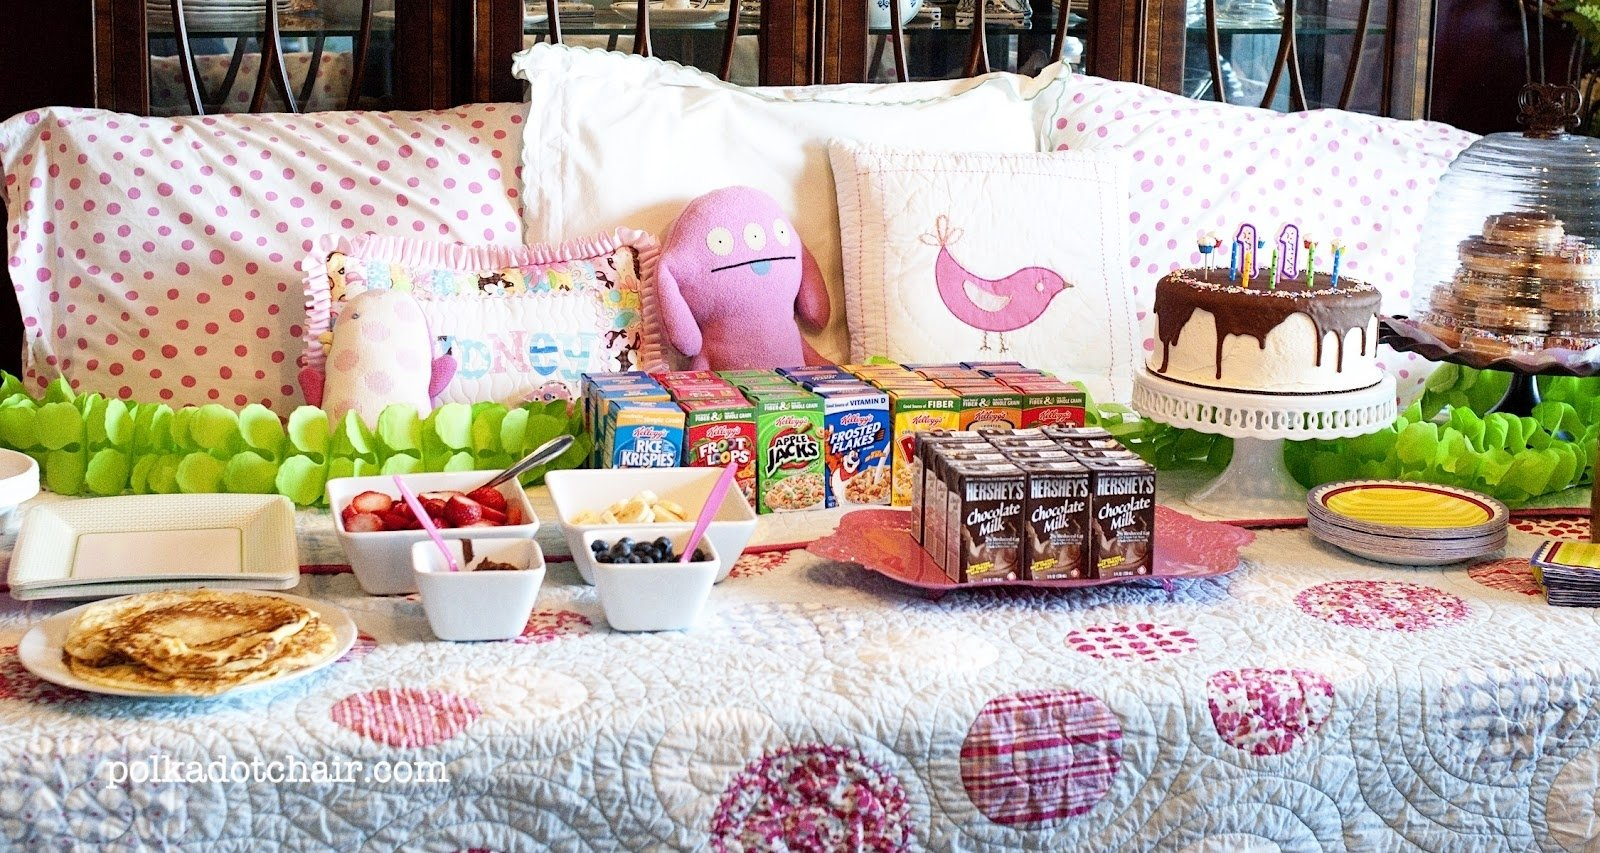 10 Most Recommended Slumber Party Ideas For 10 Year Olds simple un slumber party the polkadot chair 2 2020